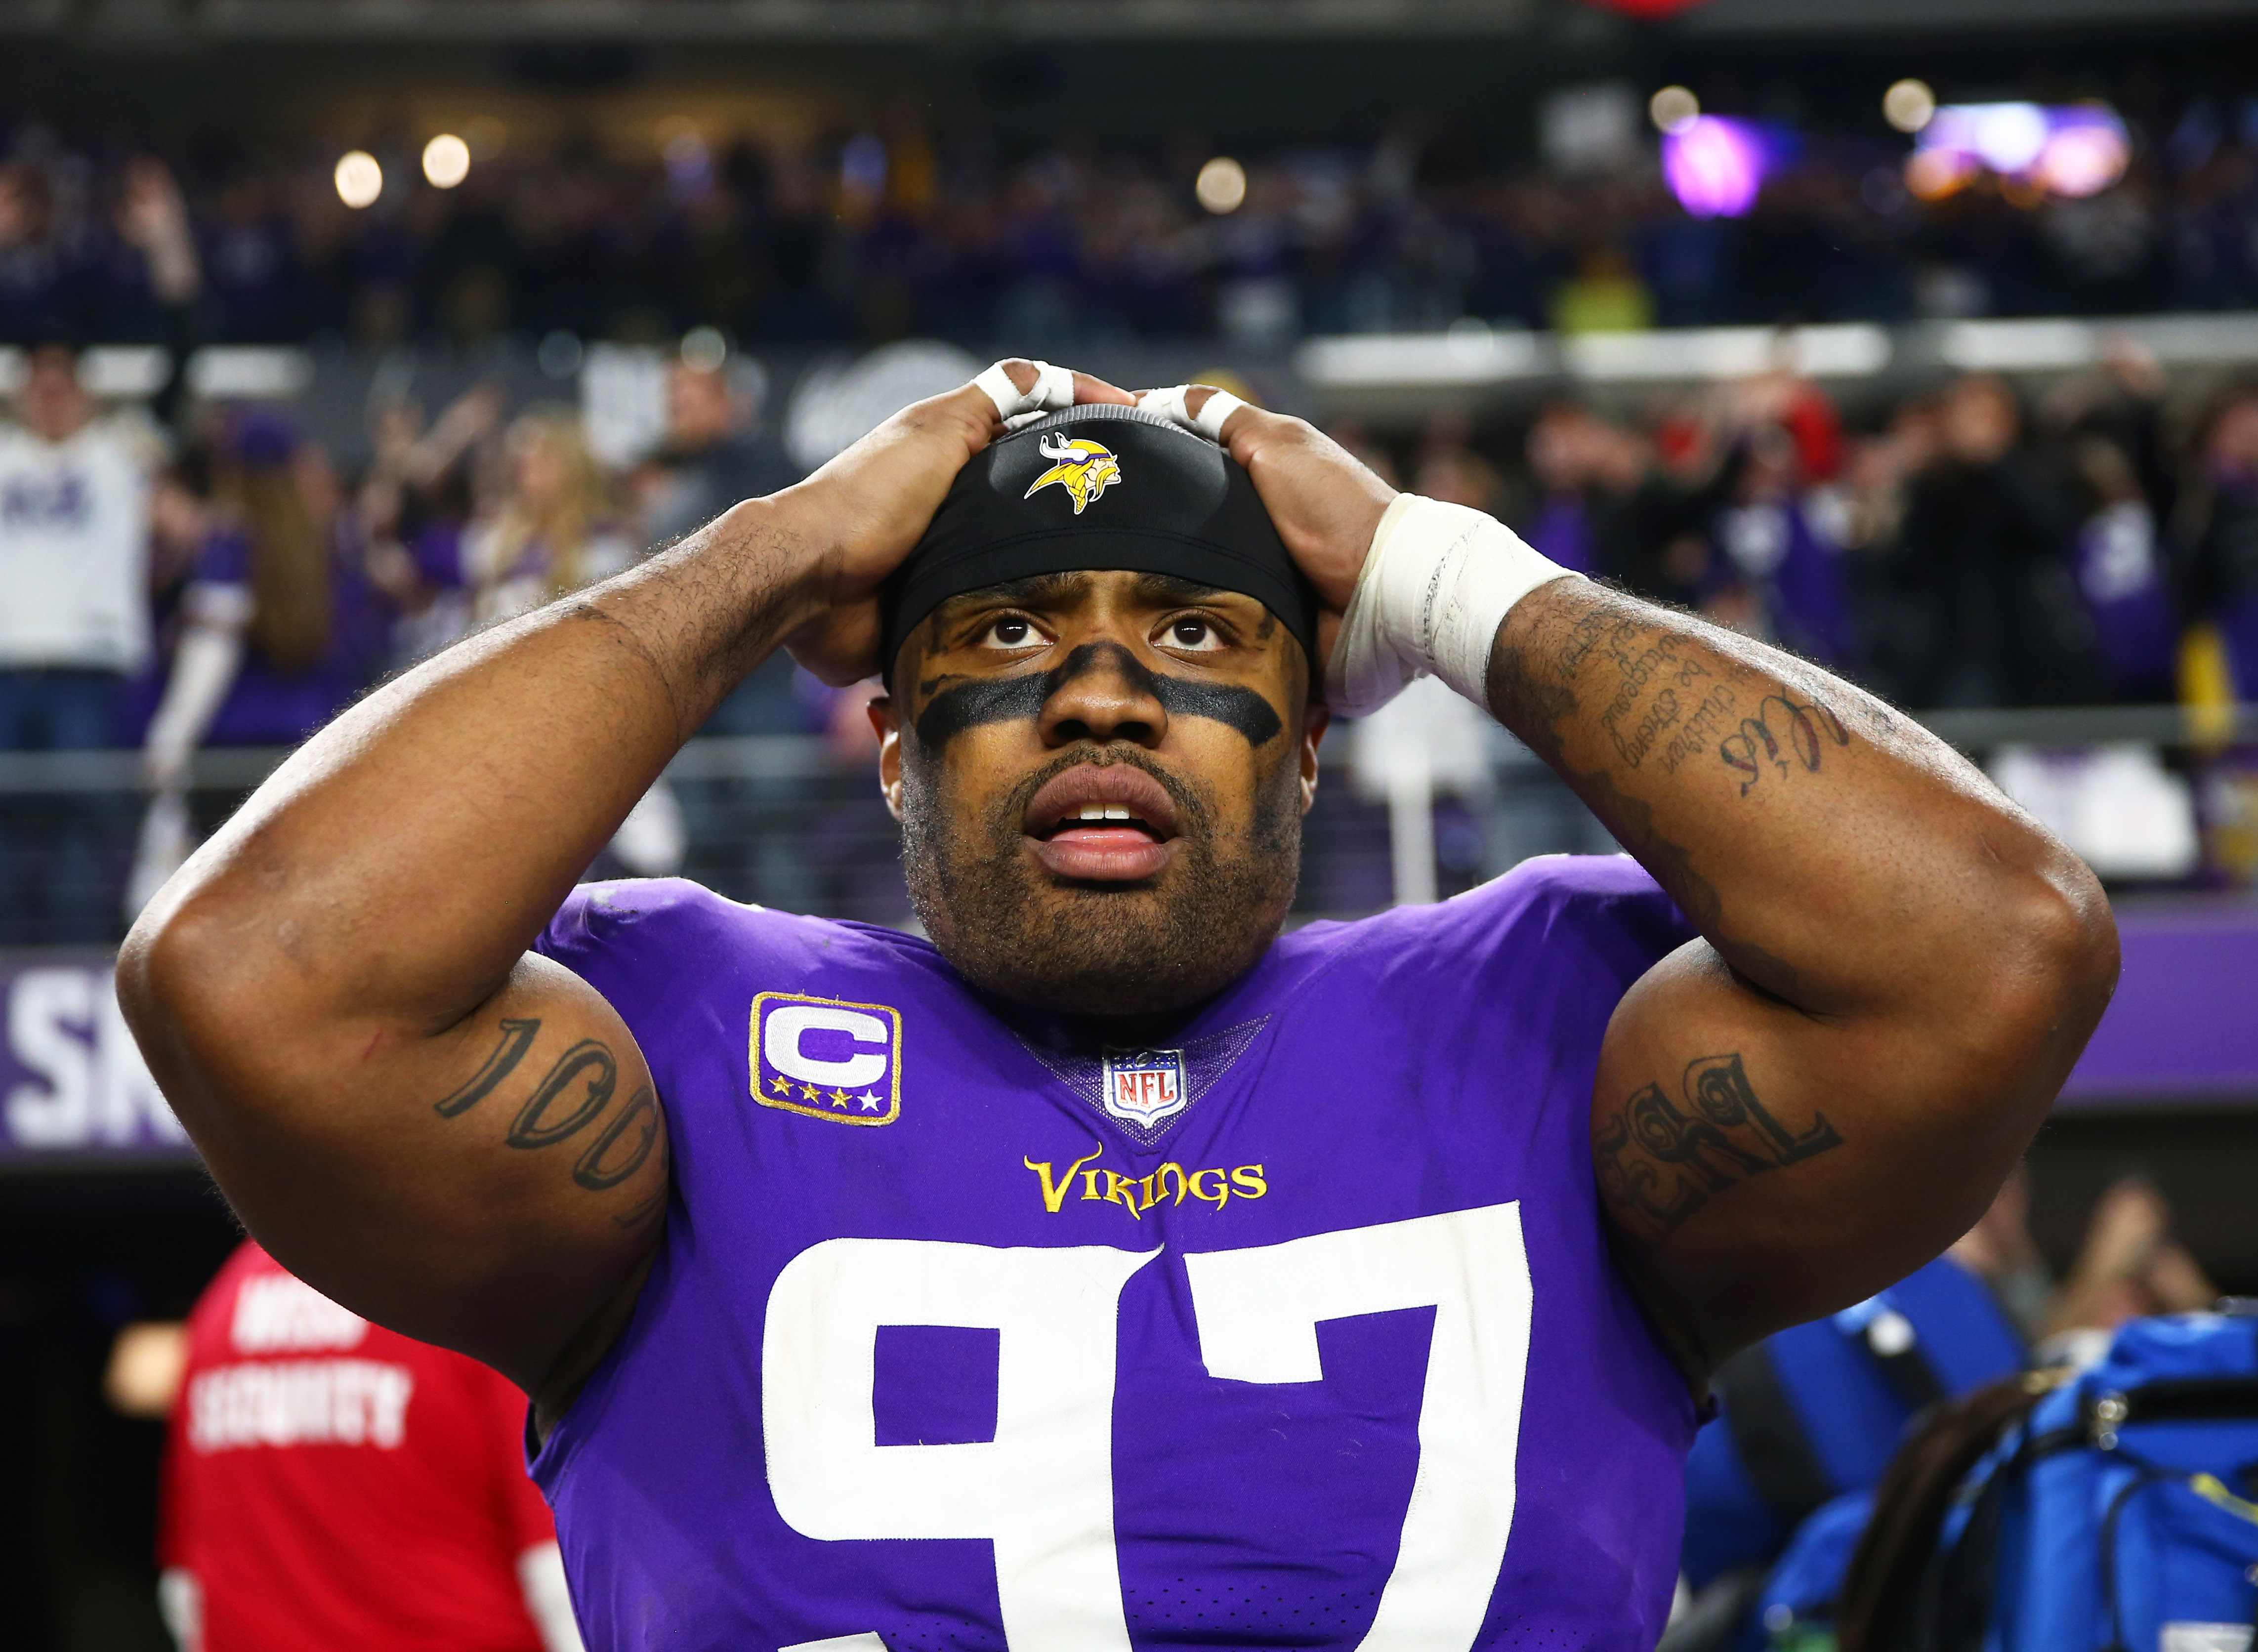 NFL: NFC Divisional Playoff-New Orleans Saints in Minnesota Vikings